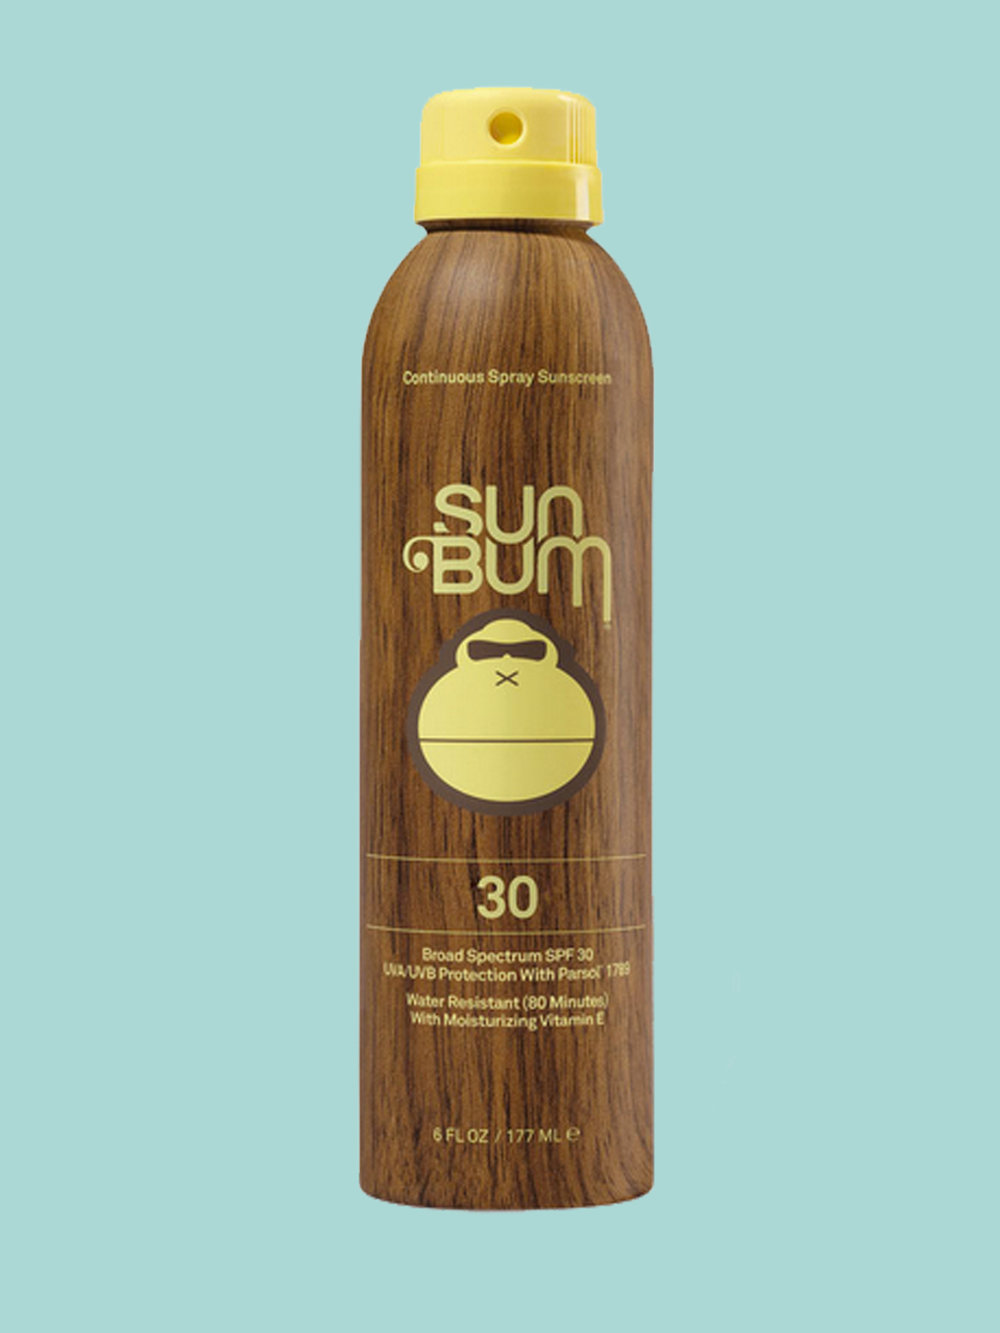 SUNSCREEN: Sun Bum SPF 30 Spray